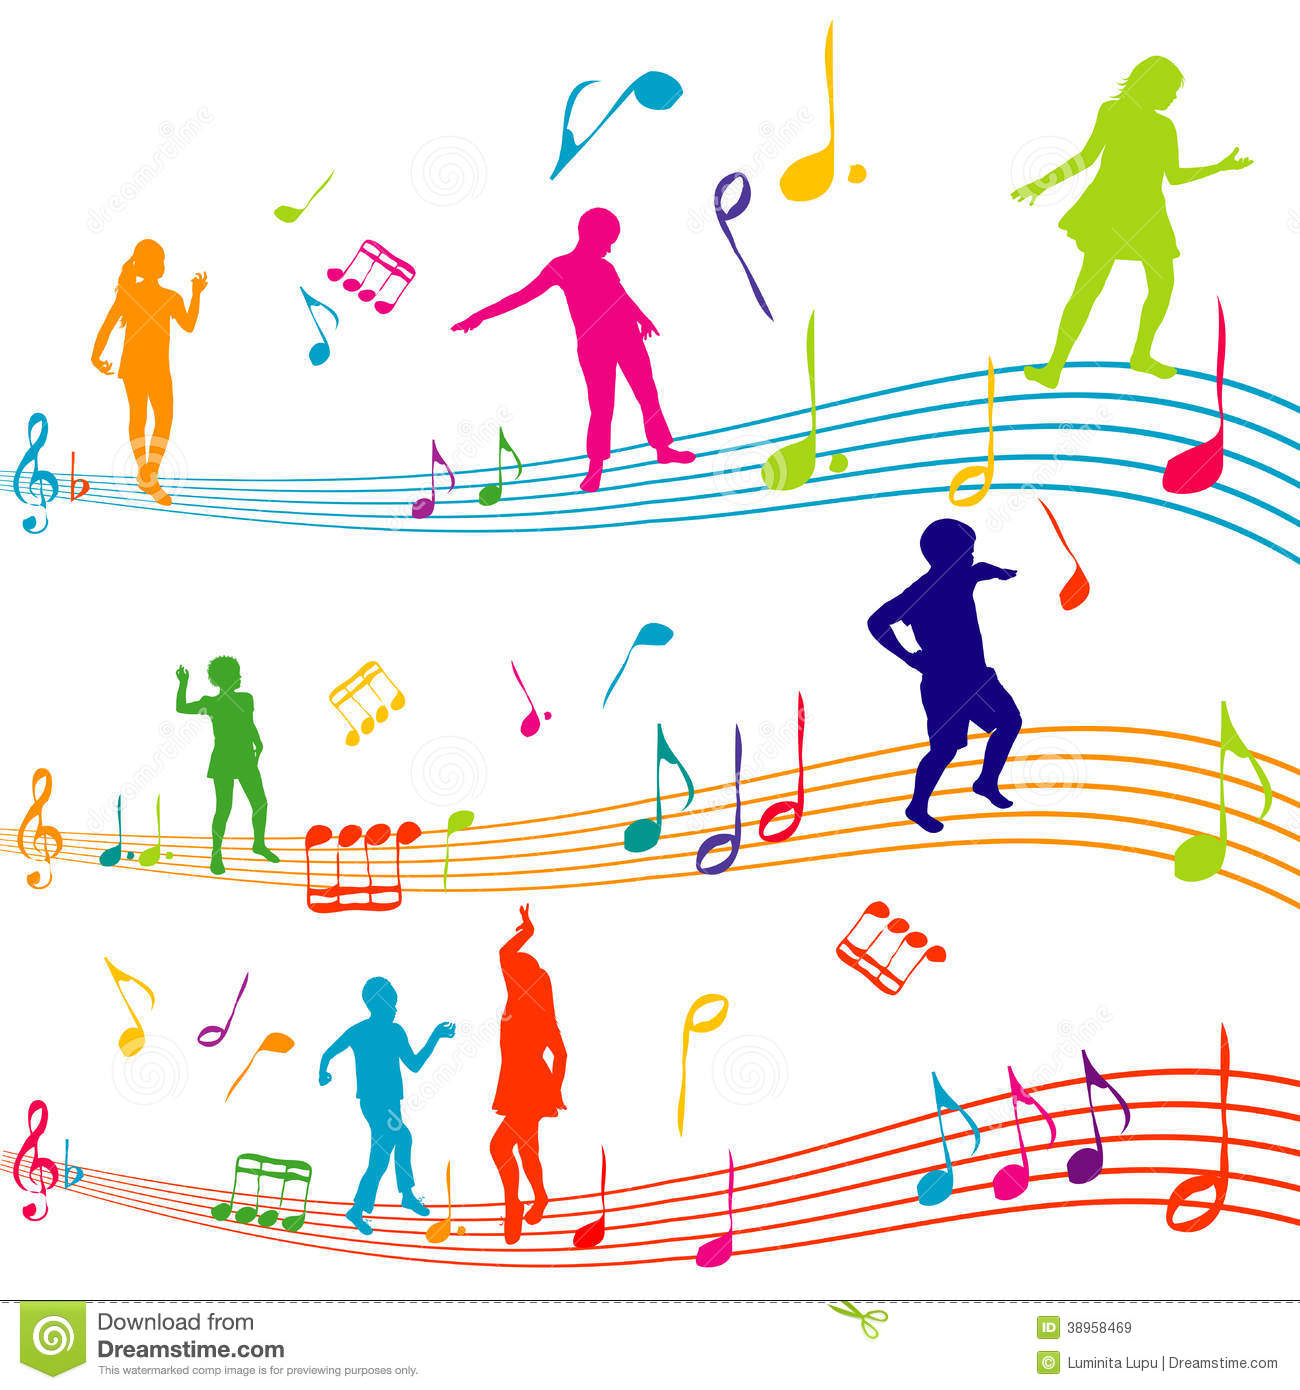 Music Note With Kids Silhouettes Dancing Stock Illustration - Image ...: https://www.dreamstime.com/royalty-free-stock-images-music-note...